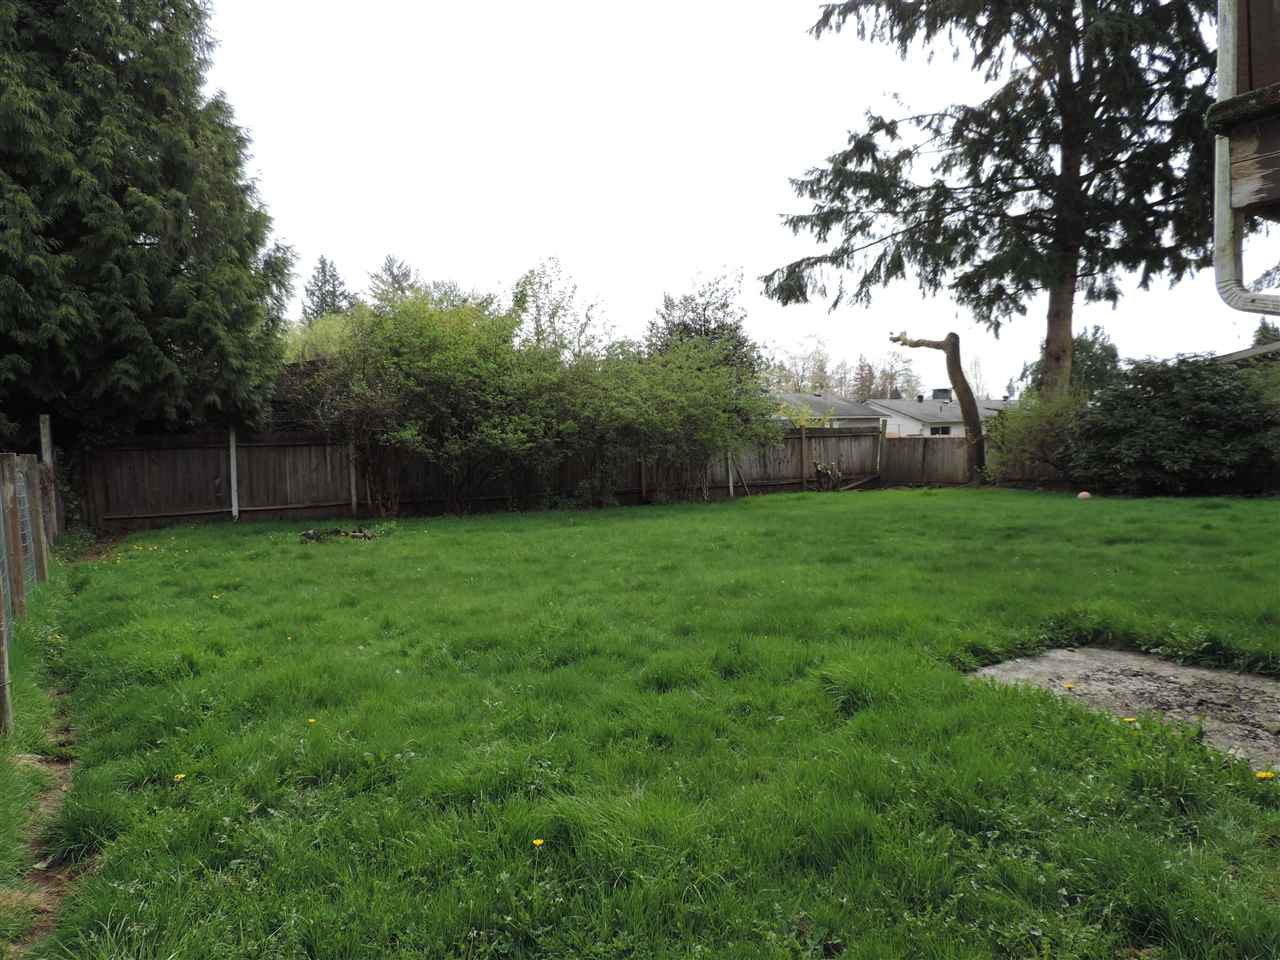 Photo 5: Photos: 7546 MARTIN Place in Mission: Mission BC House for sale : MLS®# R2360102